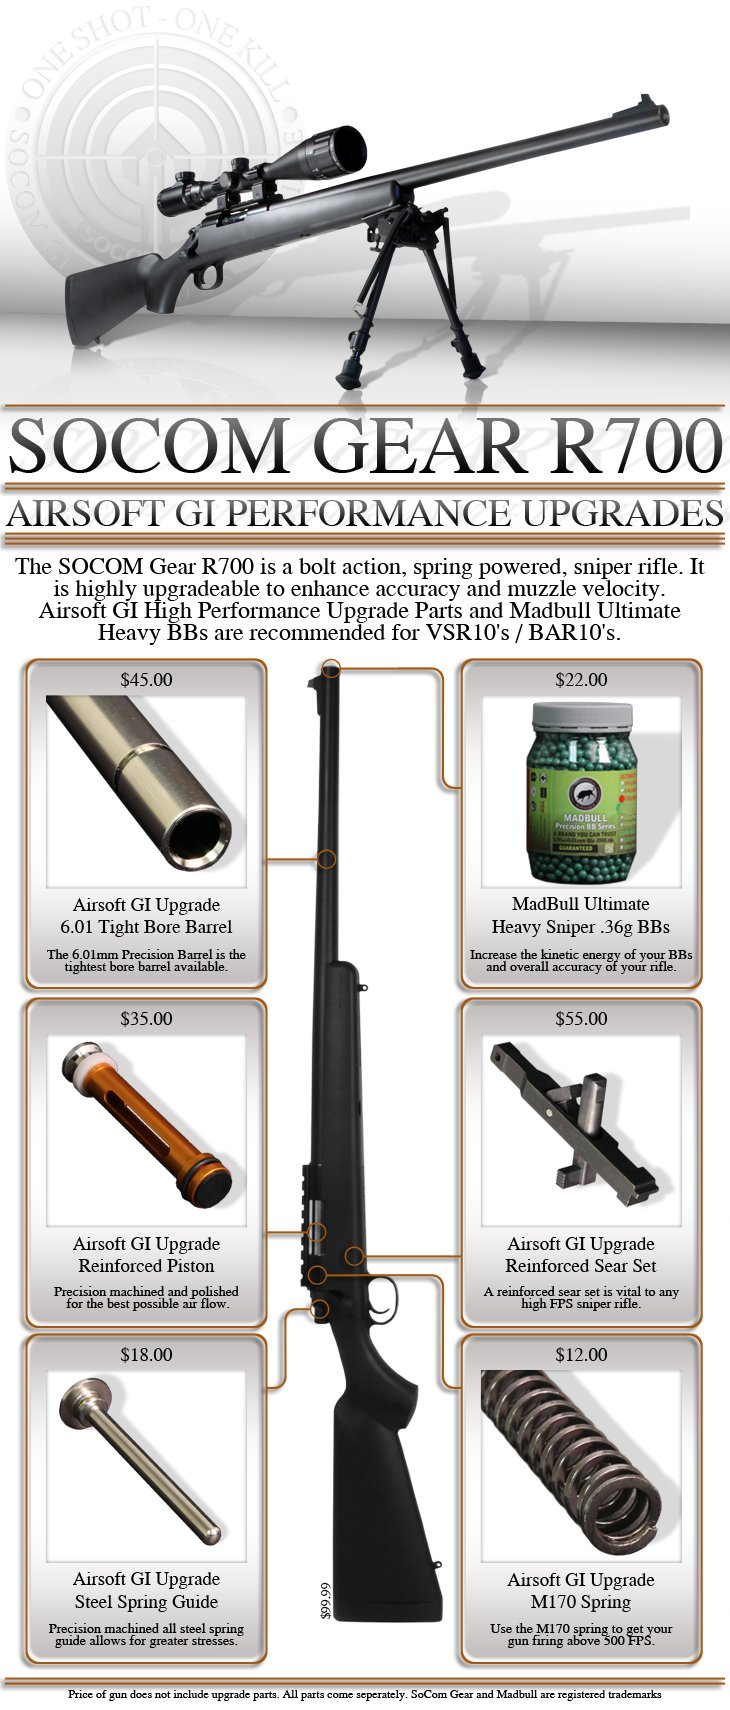 Socom Gear R700 and GI Performance Upgrades